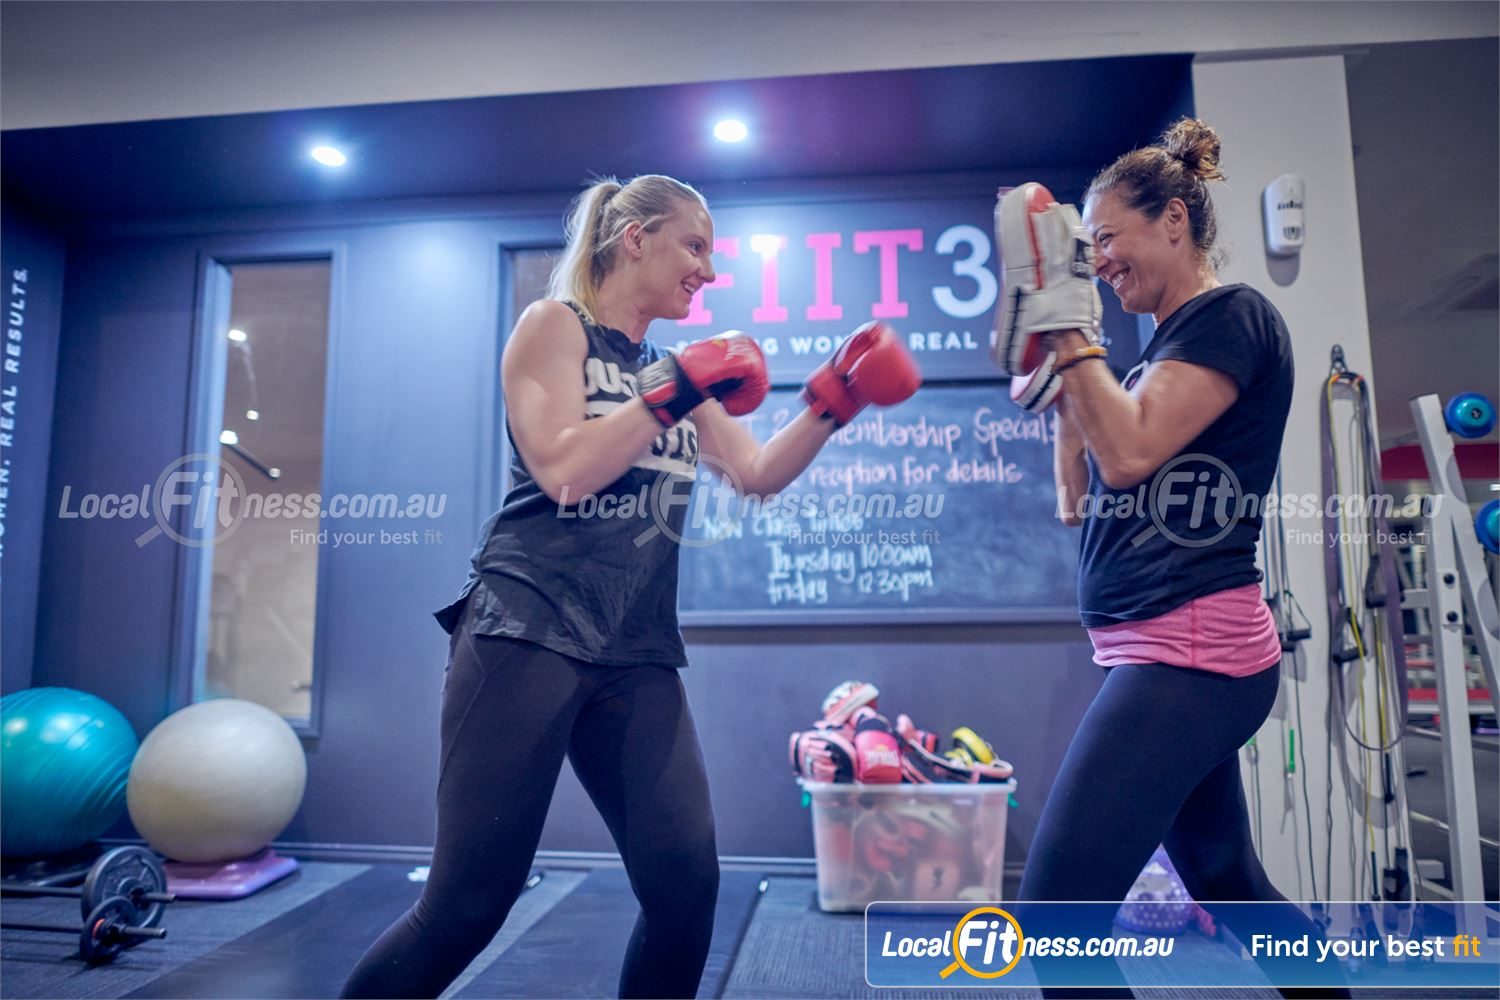 Fernwood Fitness Near Templestowe Lower Get fitter, leaner and stronger with Fernwood FIIT30.